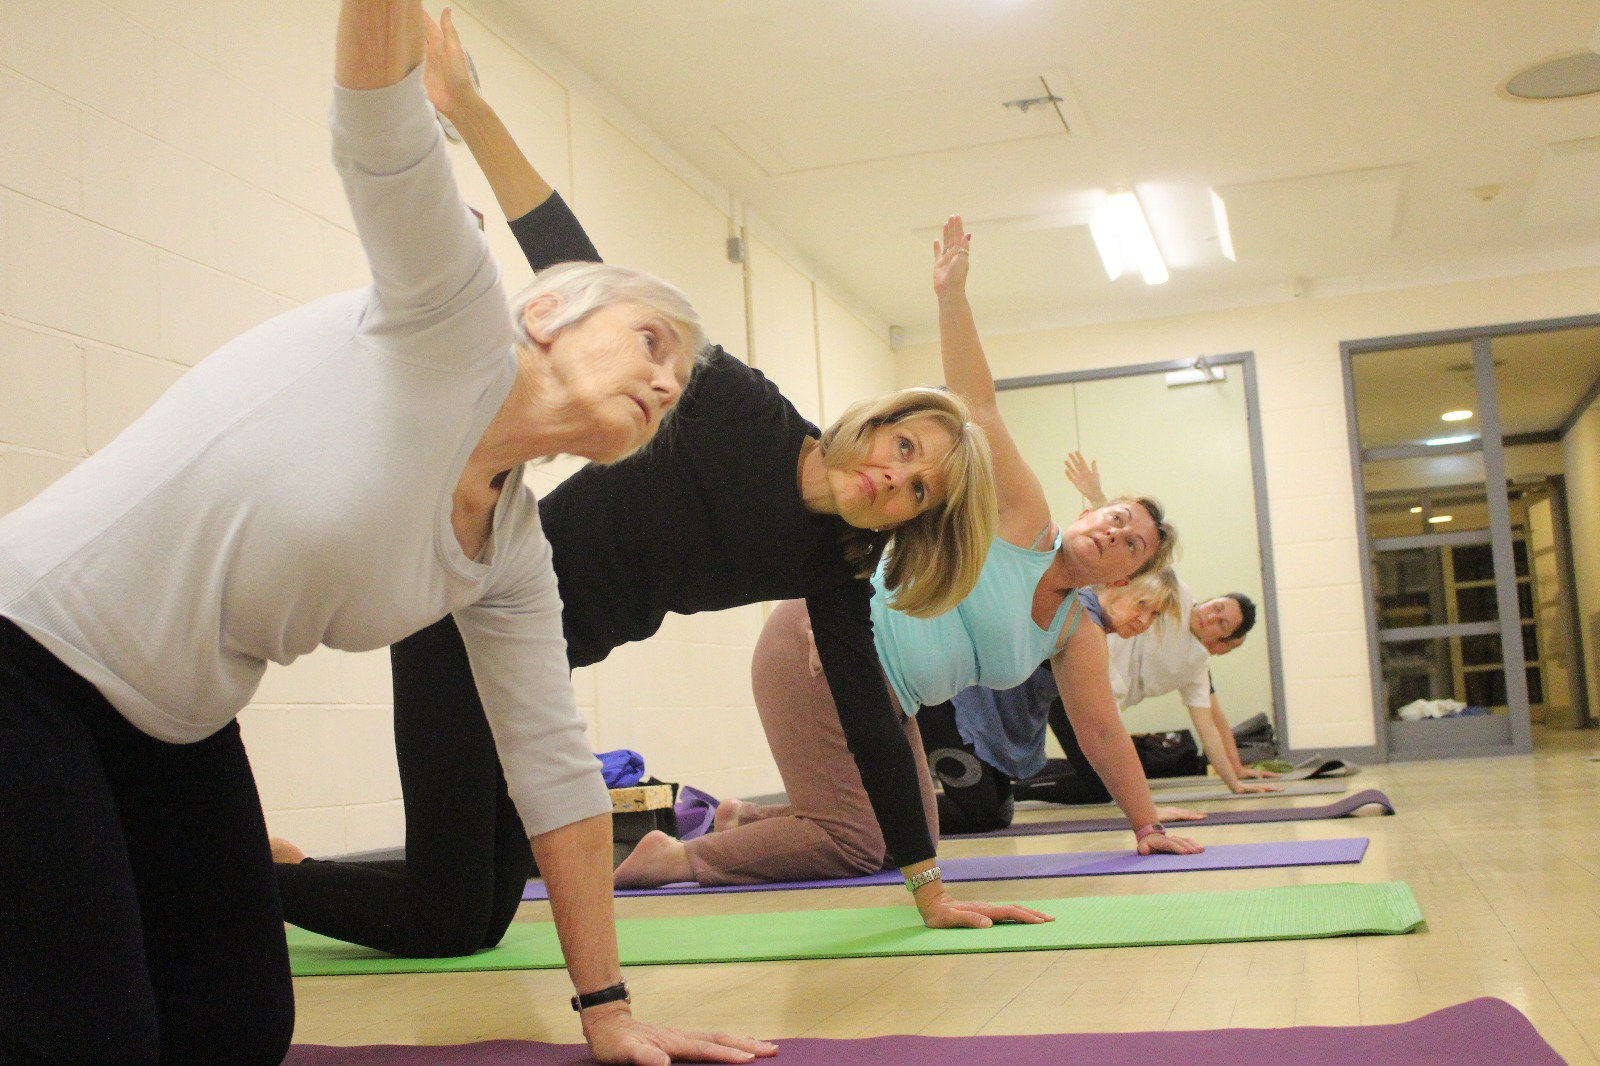 Monday Yoga for Beginners 7:30 - 8:30pm